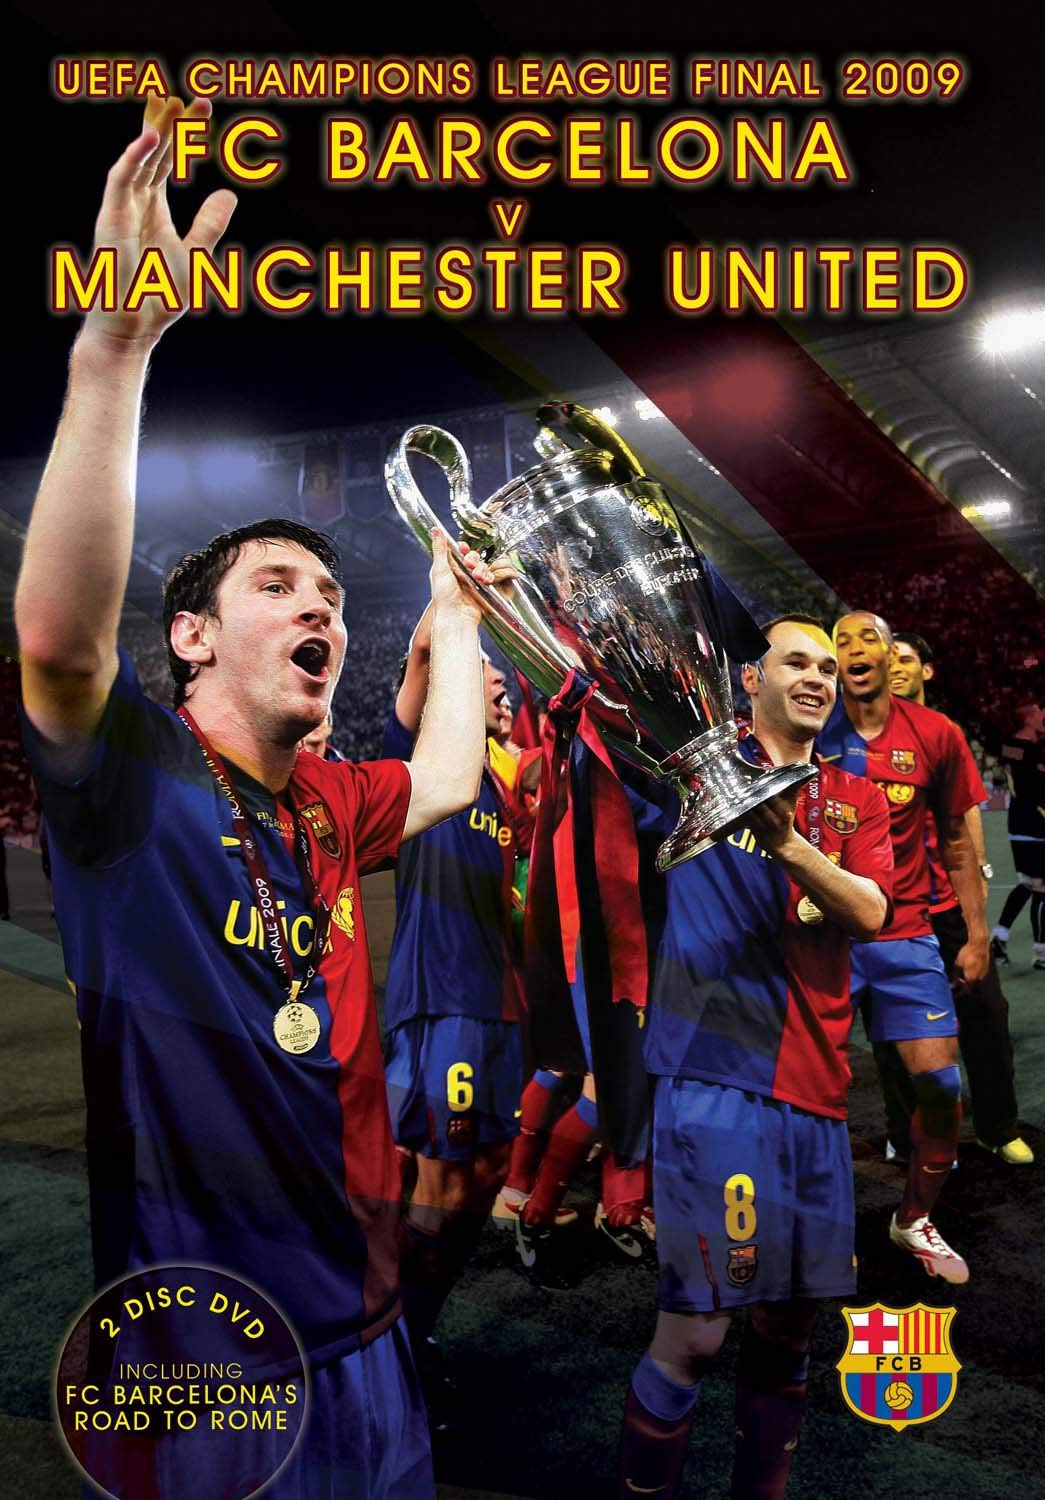 UEFA Champions League Final 2009: FC Barcelona v Manchester United ...